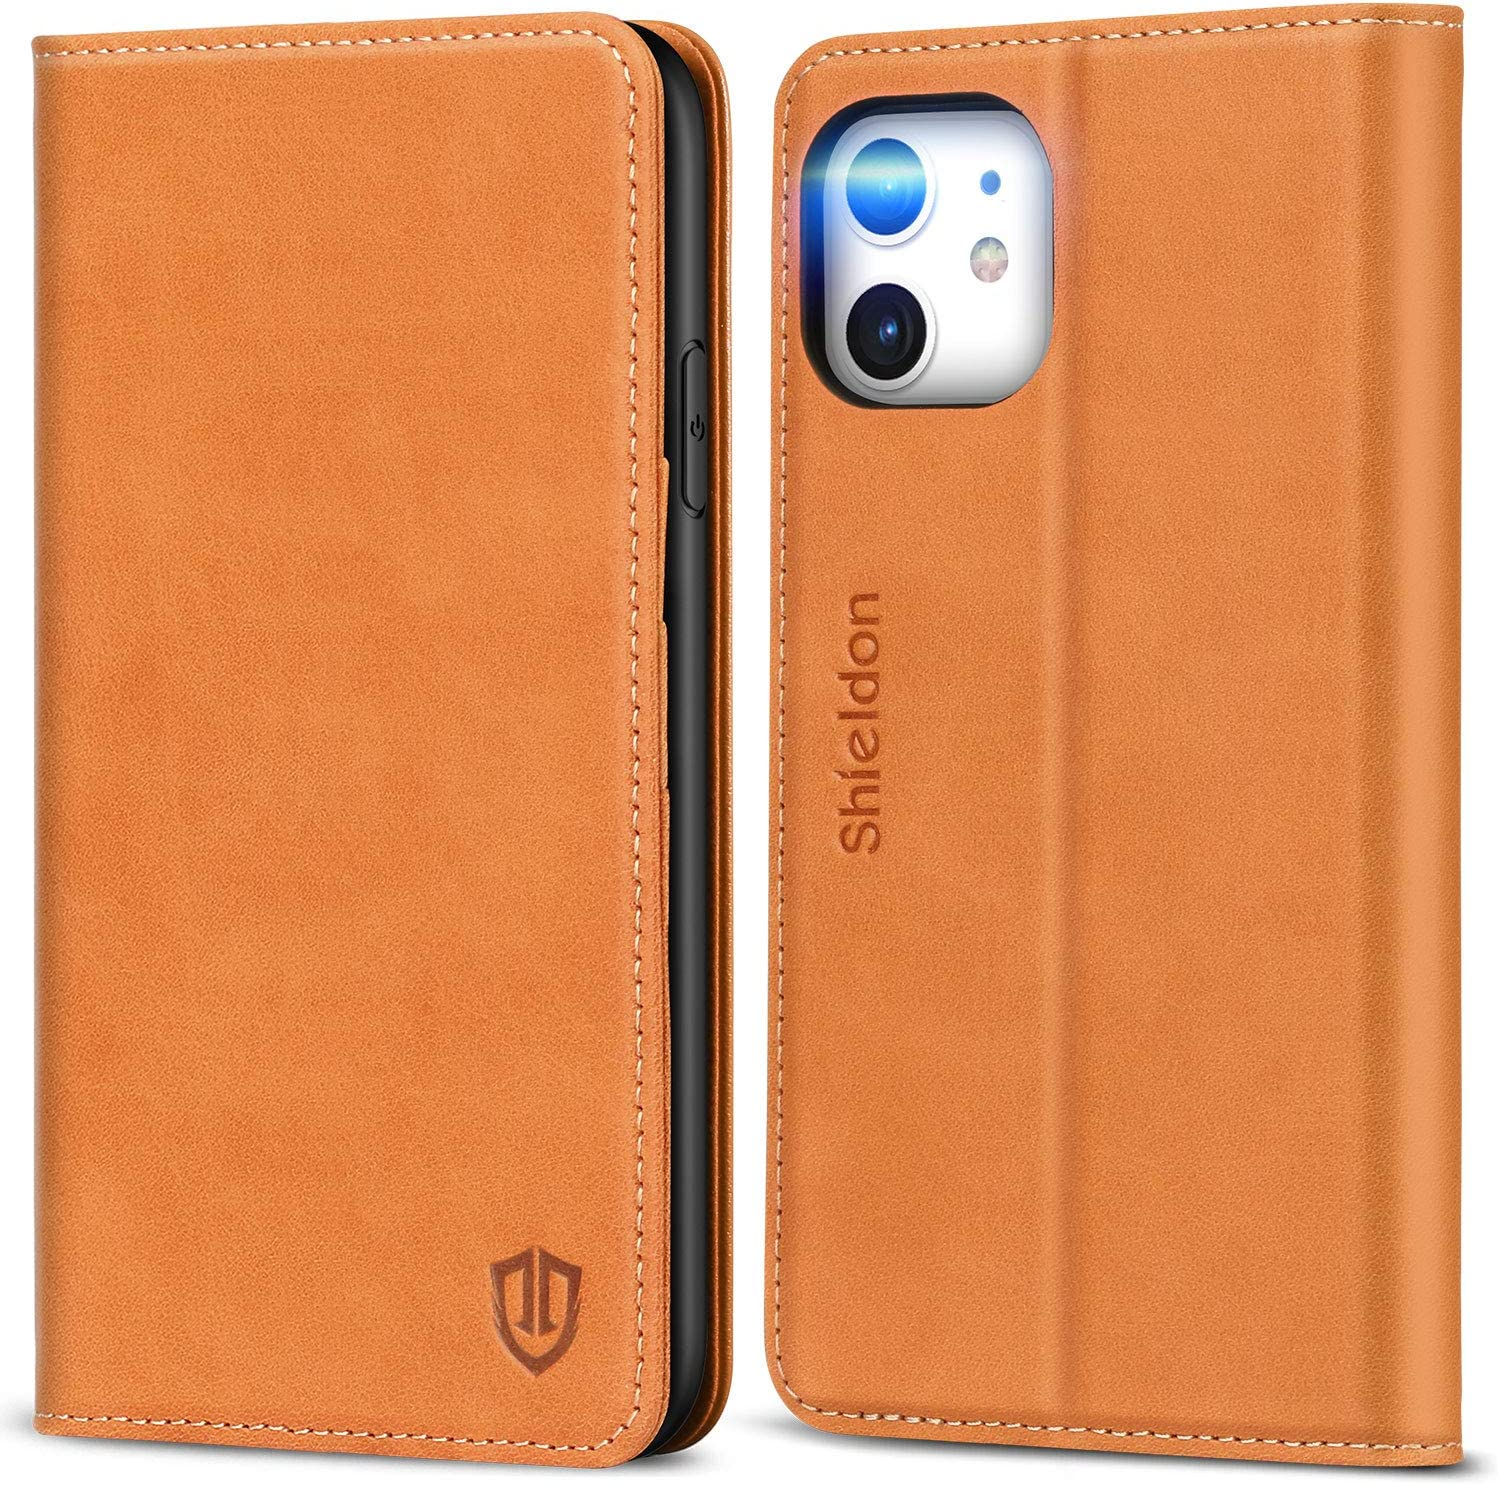 SHIELDON iPhone 11 Case, Genuine Leather iPhone 11 Wallet Case Folio Magnetic Cover Kickstand RFID Blocking Card Slots TPU Shockproof Protective Holder Compatible with iPhone 11 (6.1 Inch) - Tan Brown